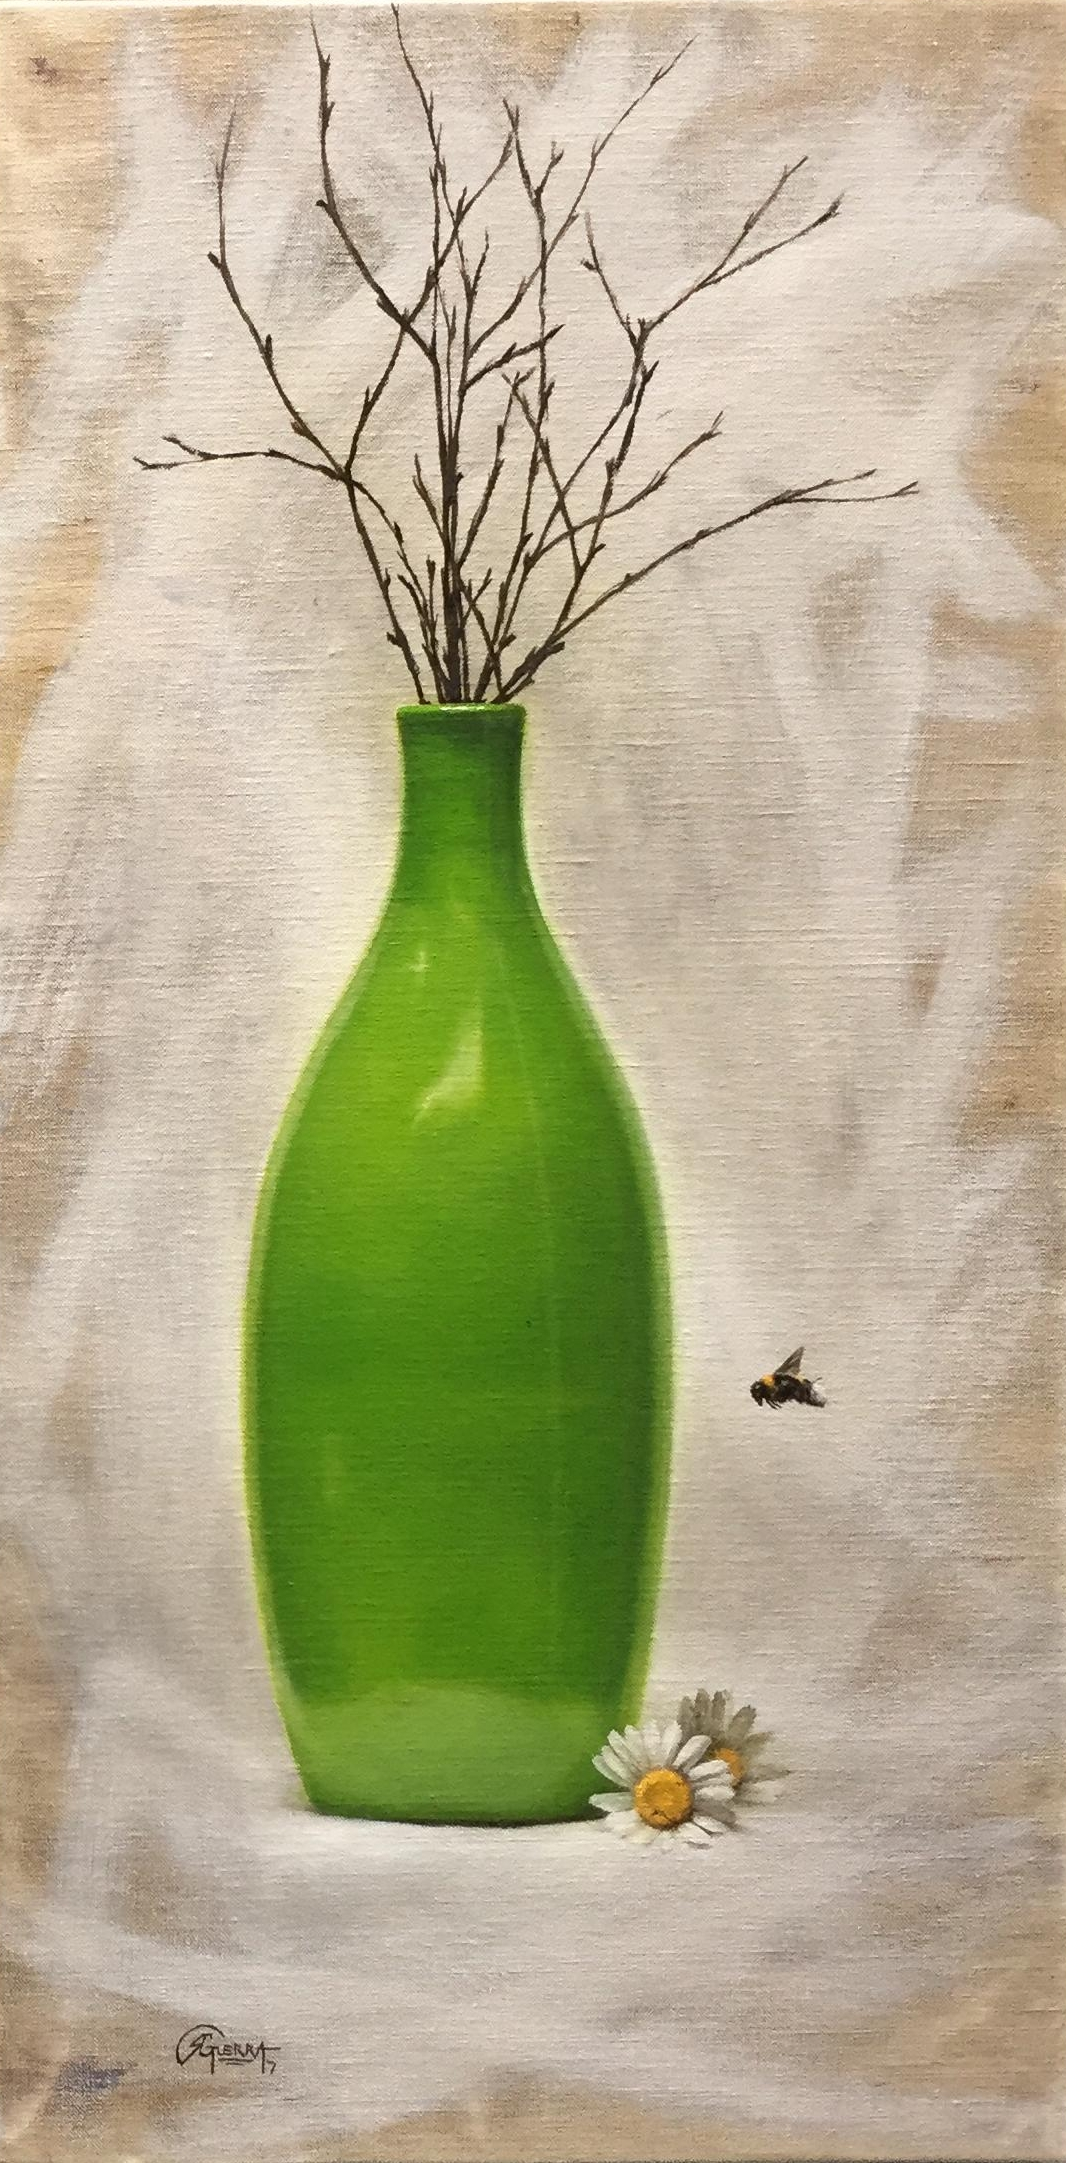 The Green Vase and The Bee